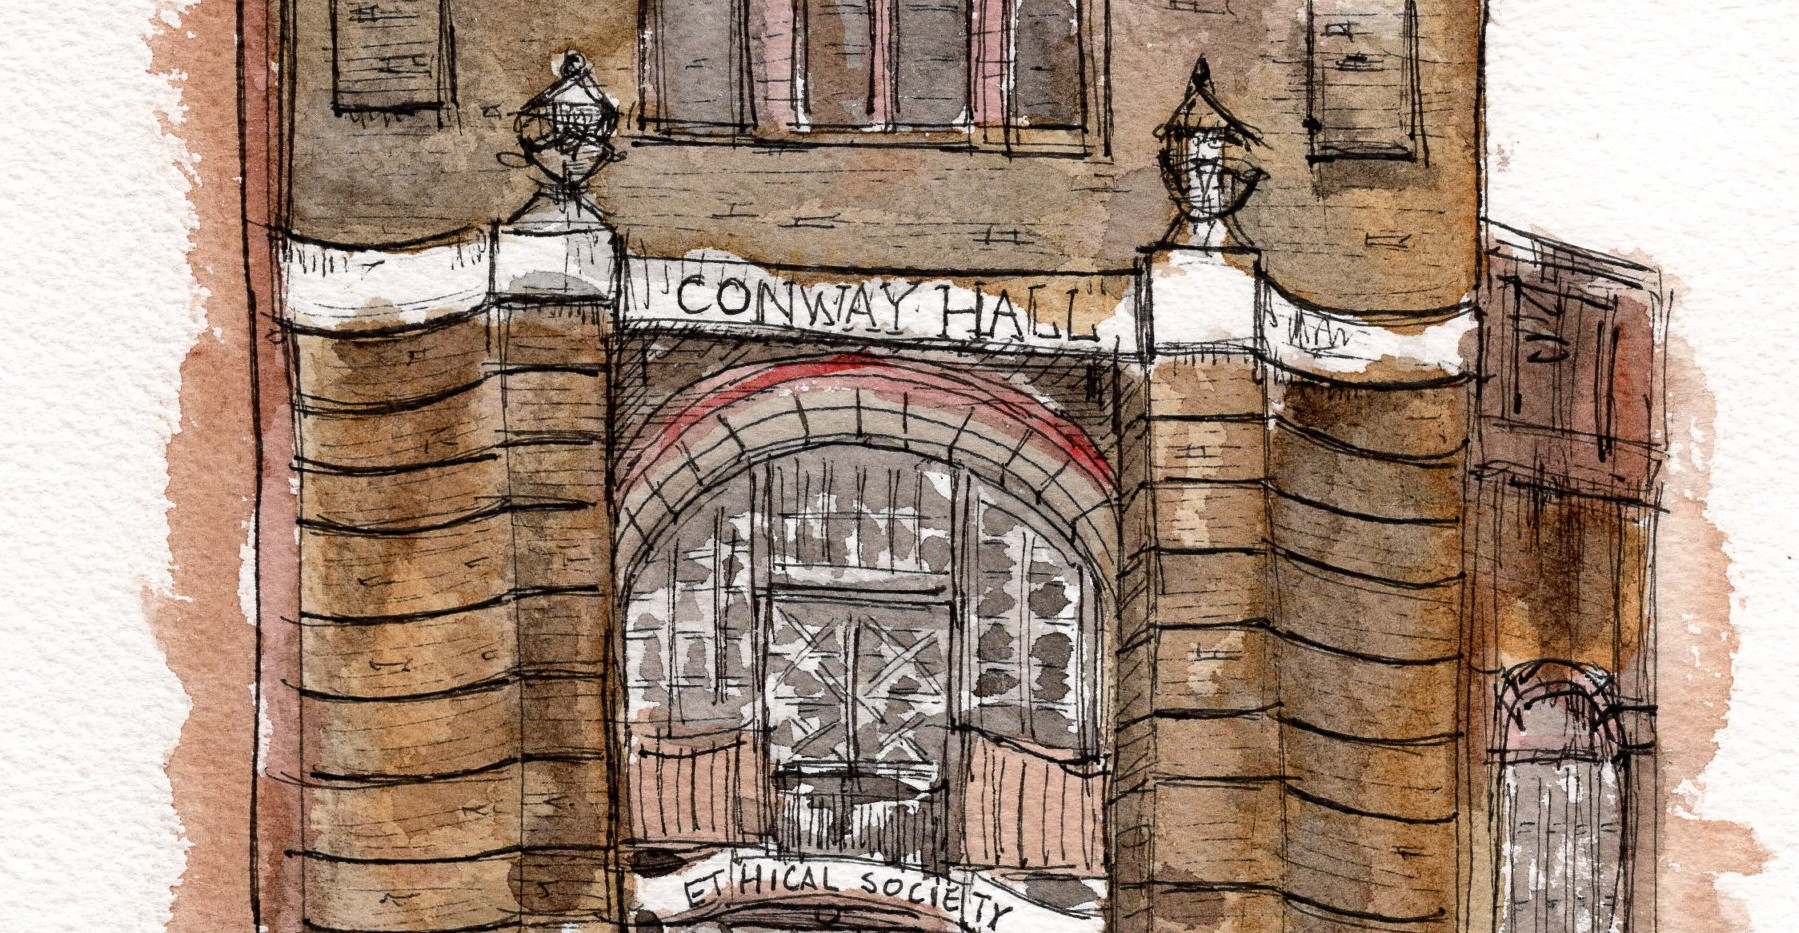 Lon003 Conway Hall